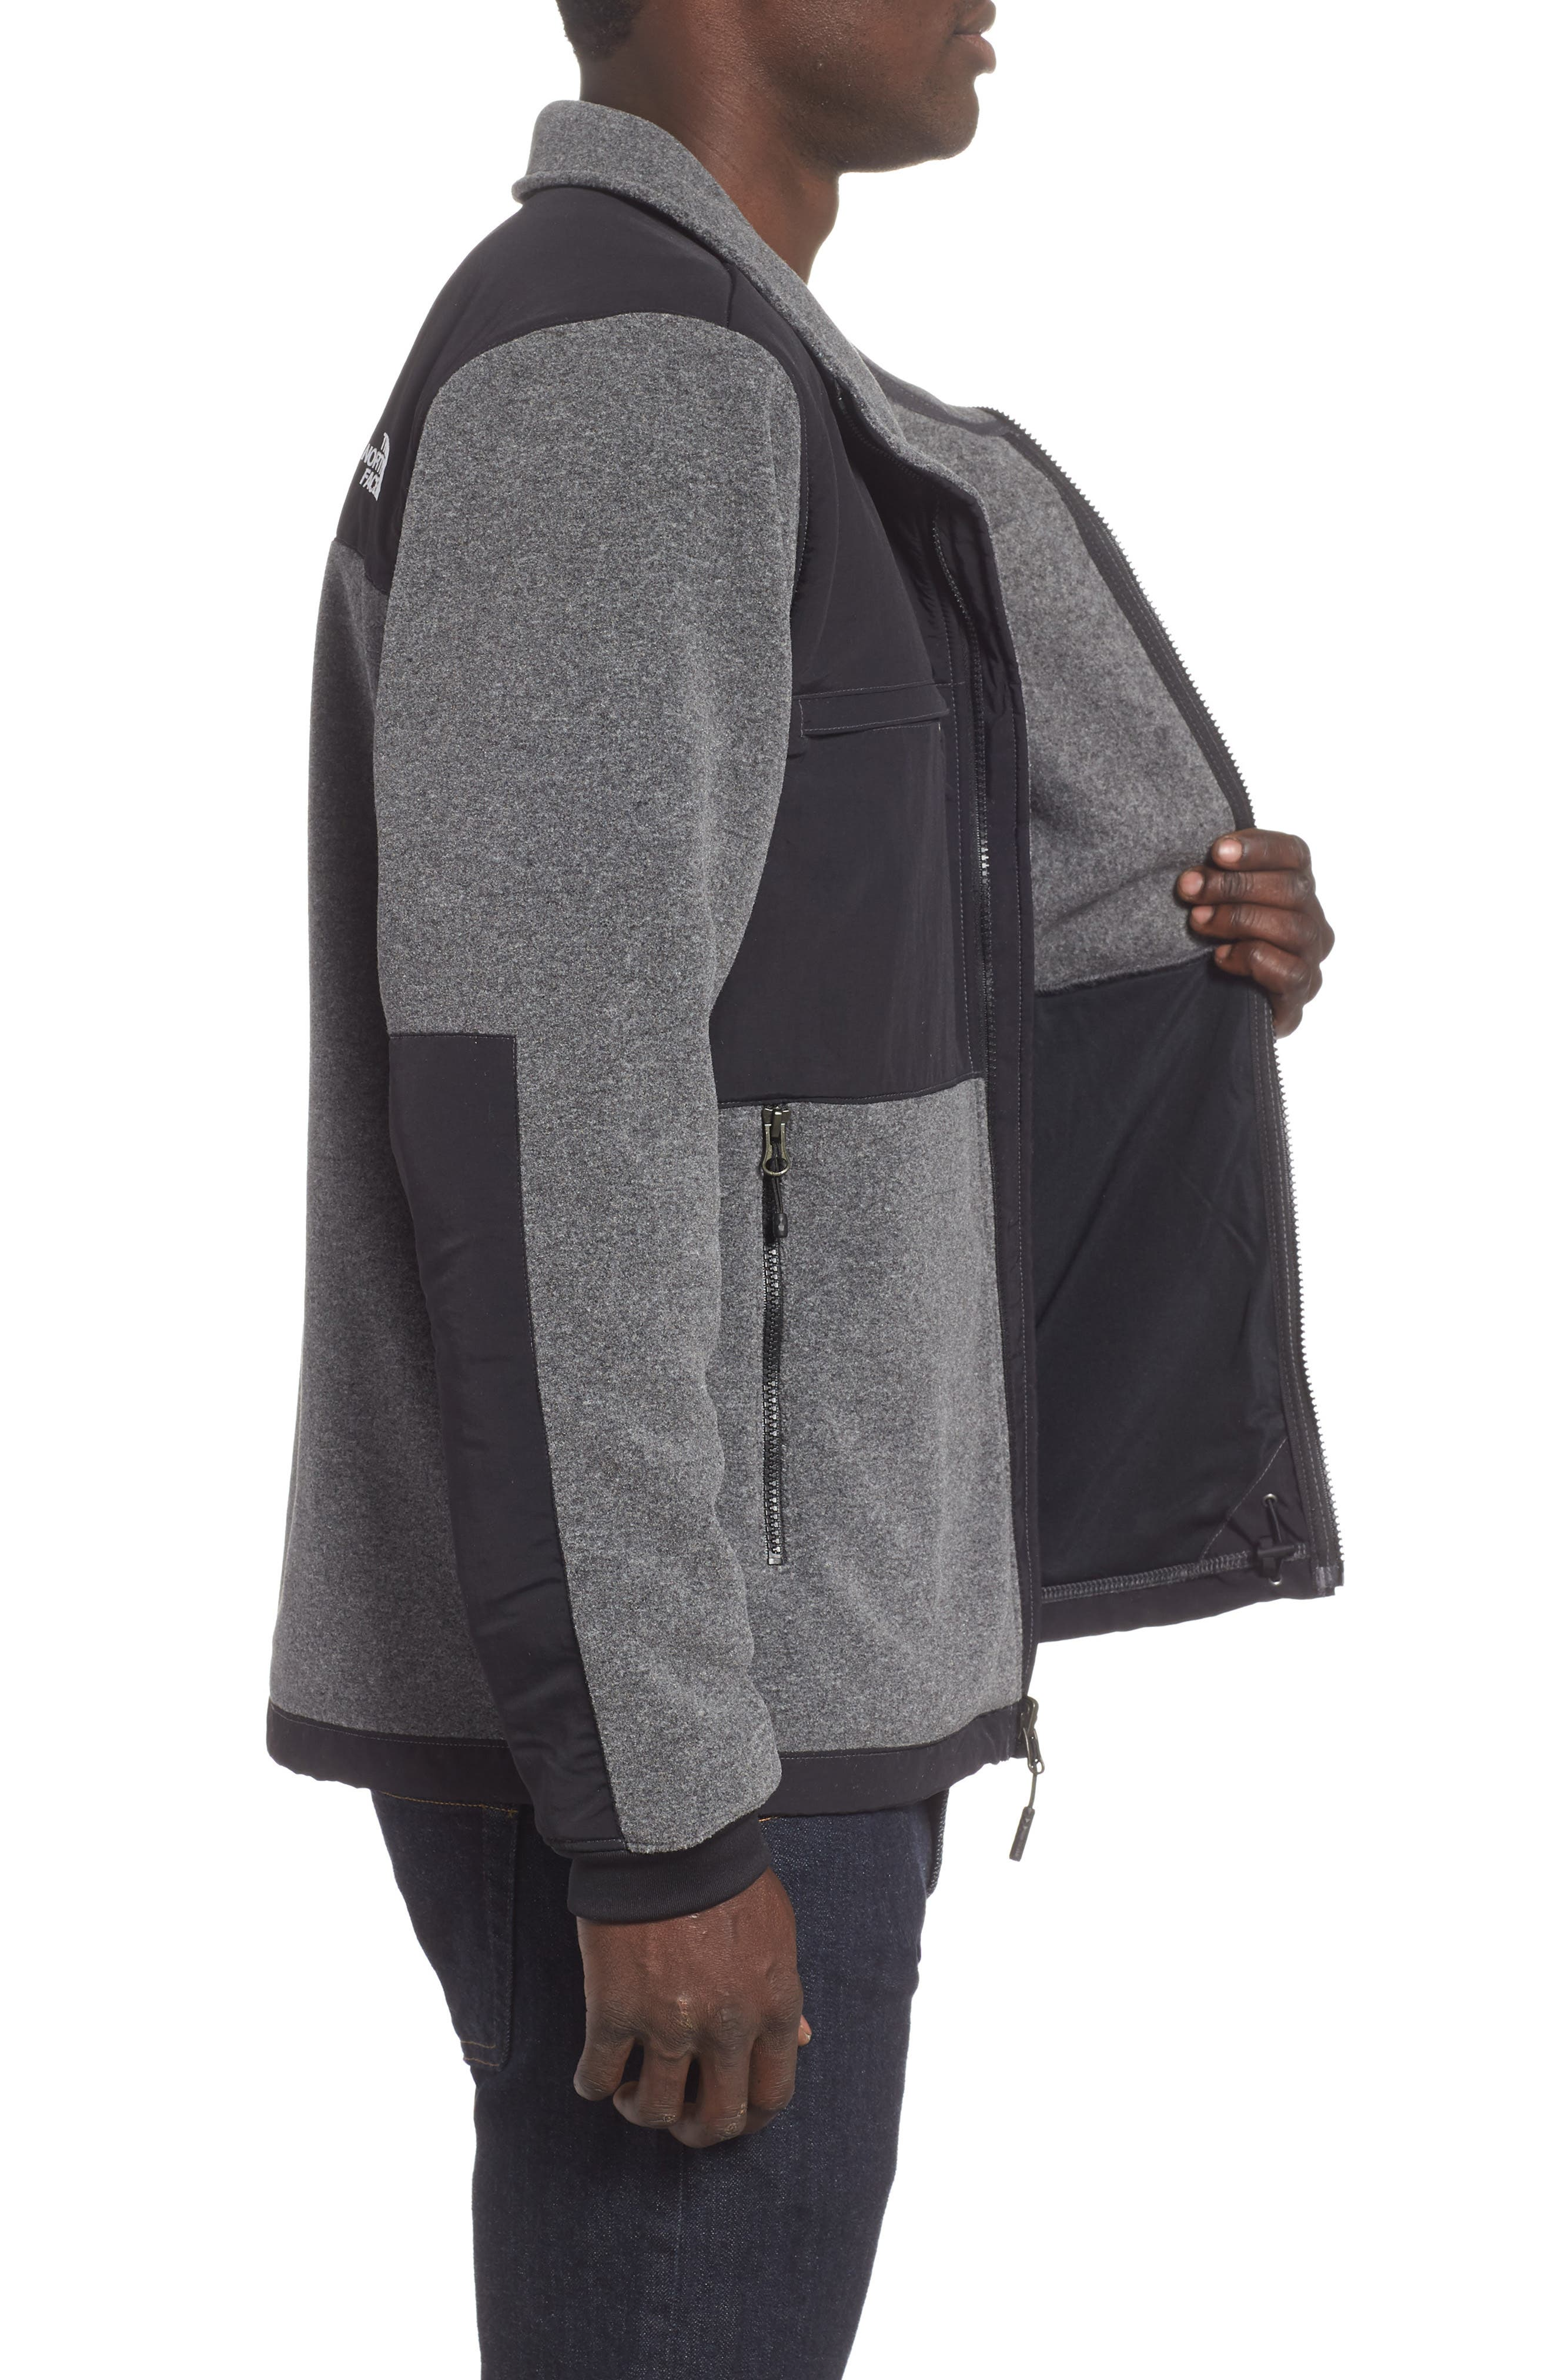 THE NORTH FACE,                             Denali 2 Jacket,                             Alternate thumbnail 3, color,                             RECYCLED CHARCOAL GREY HEATHER